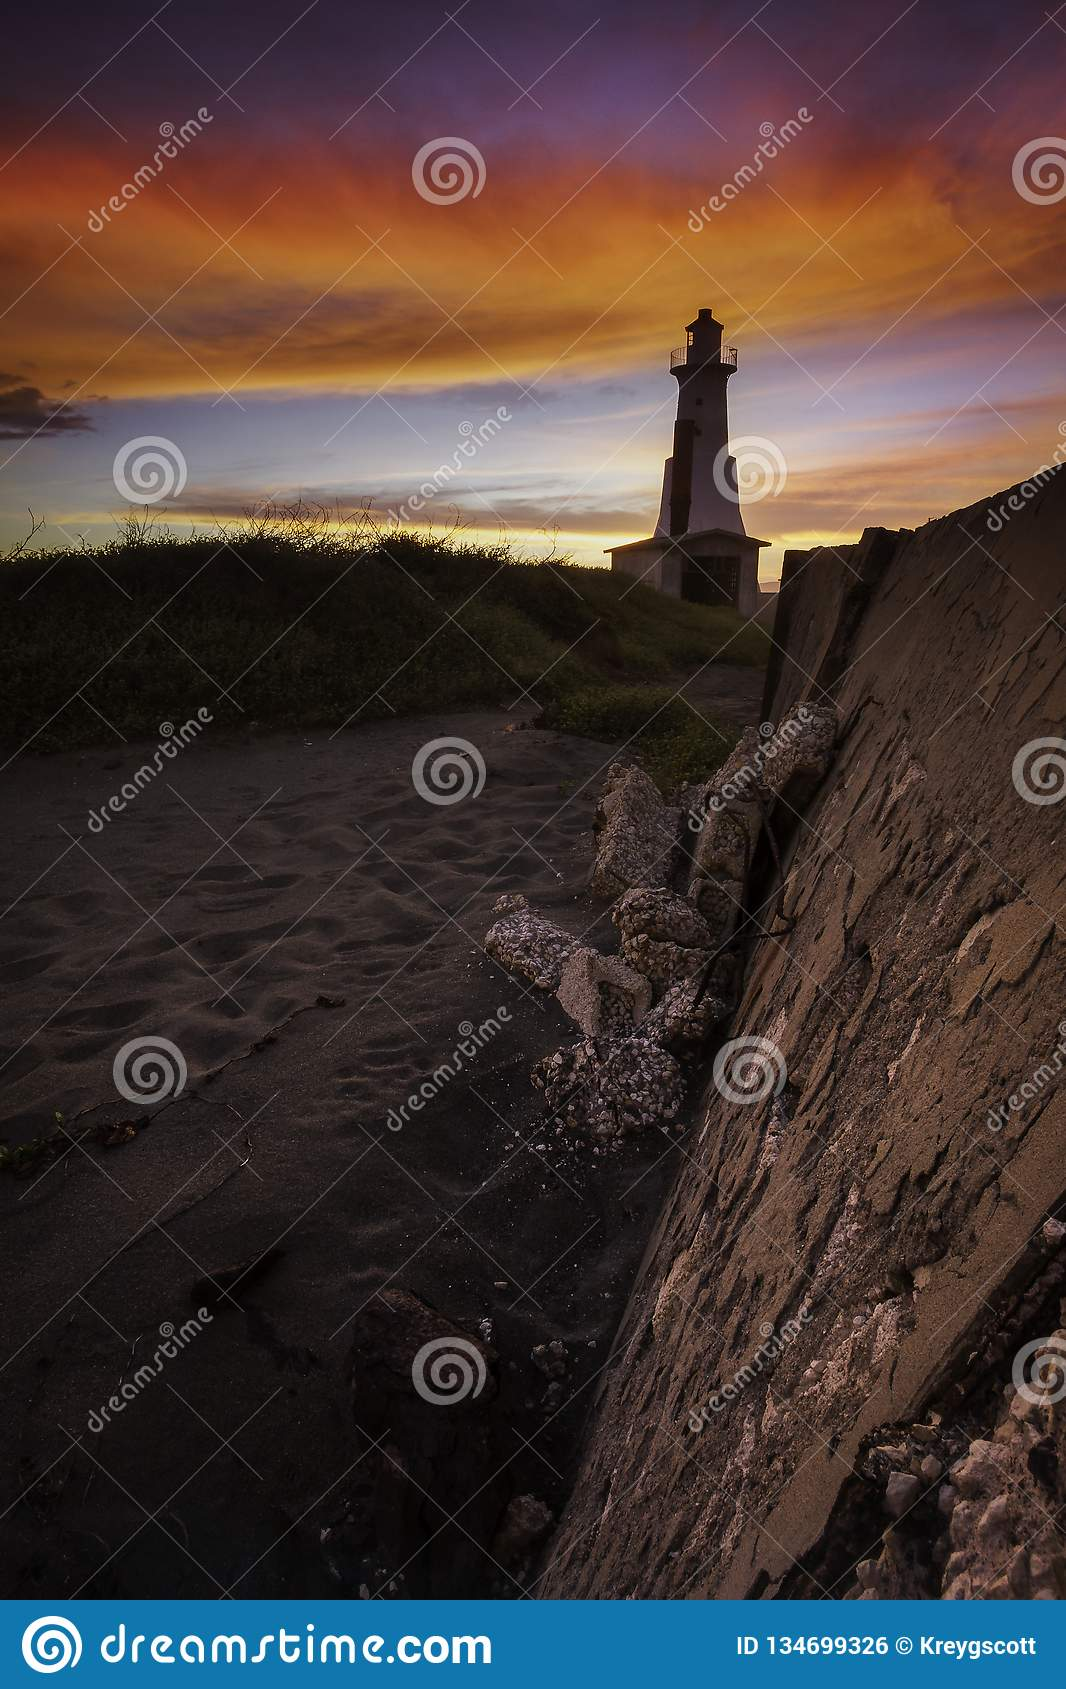 Beautiful sunset image of the Plumb Point Lighthouse